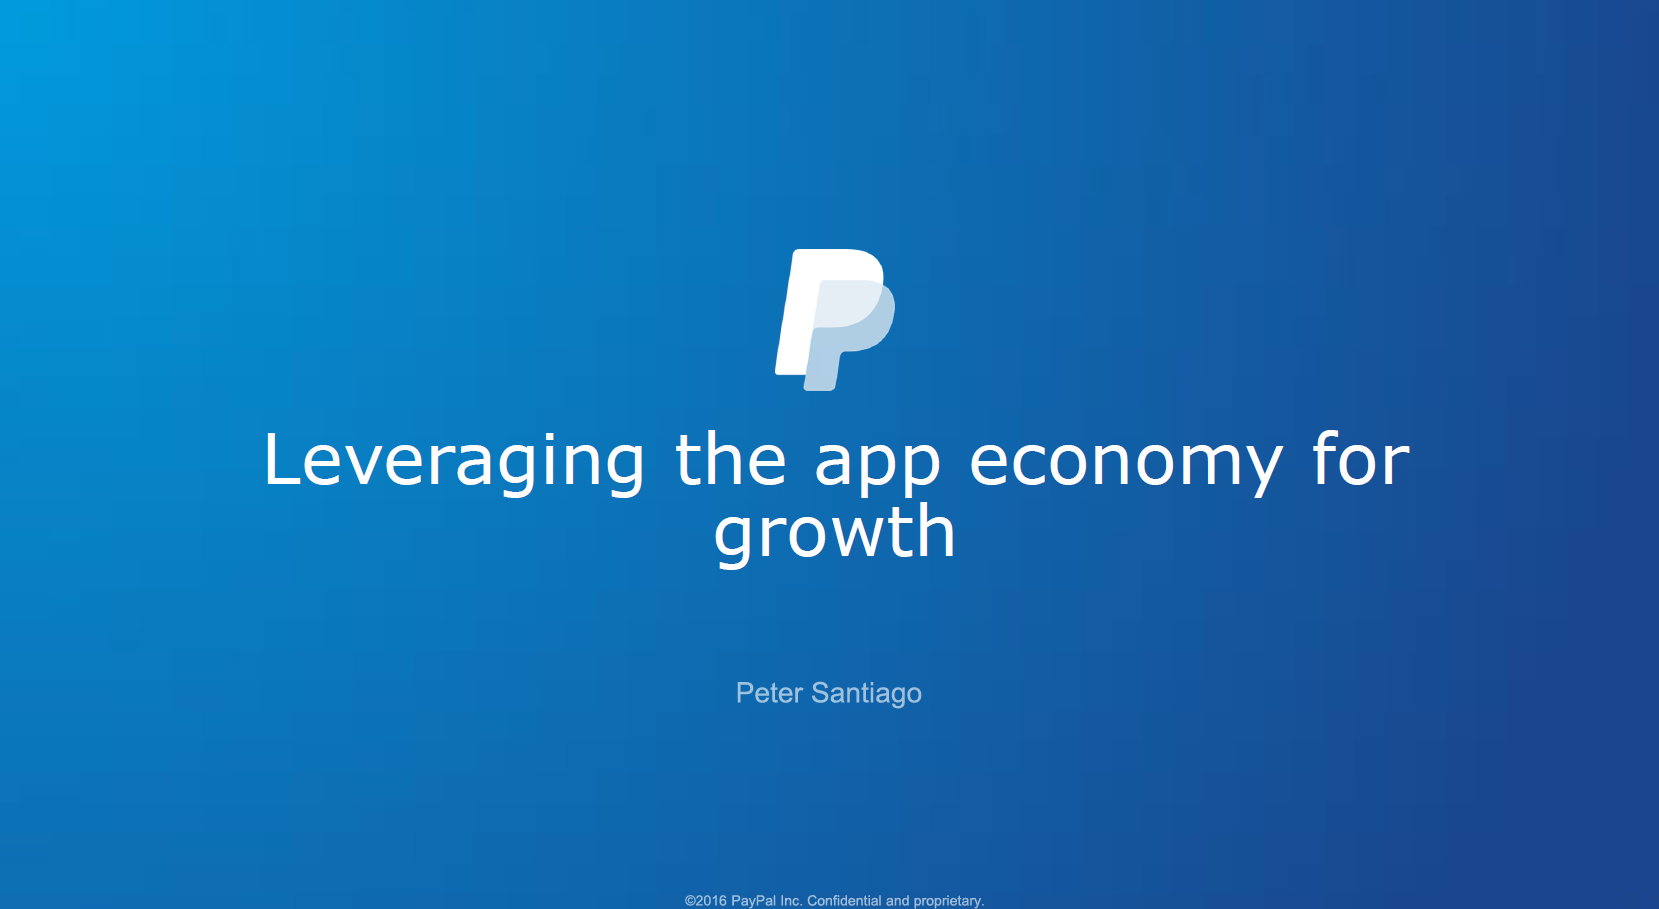 Leveraging the App Economy For Growth